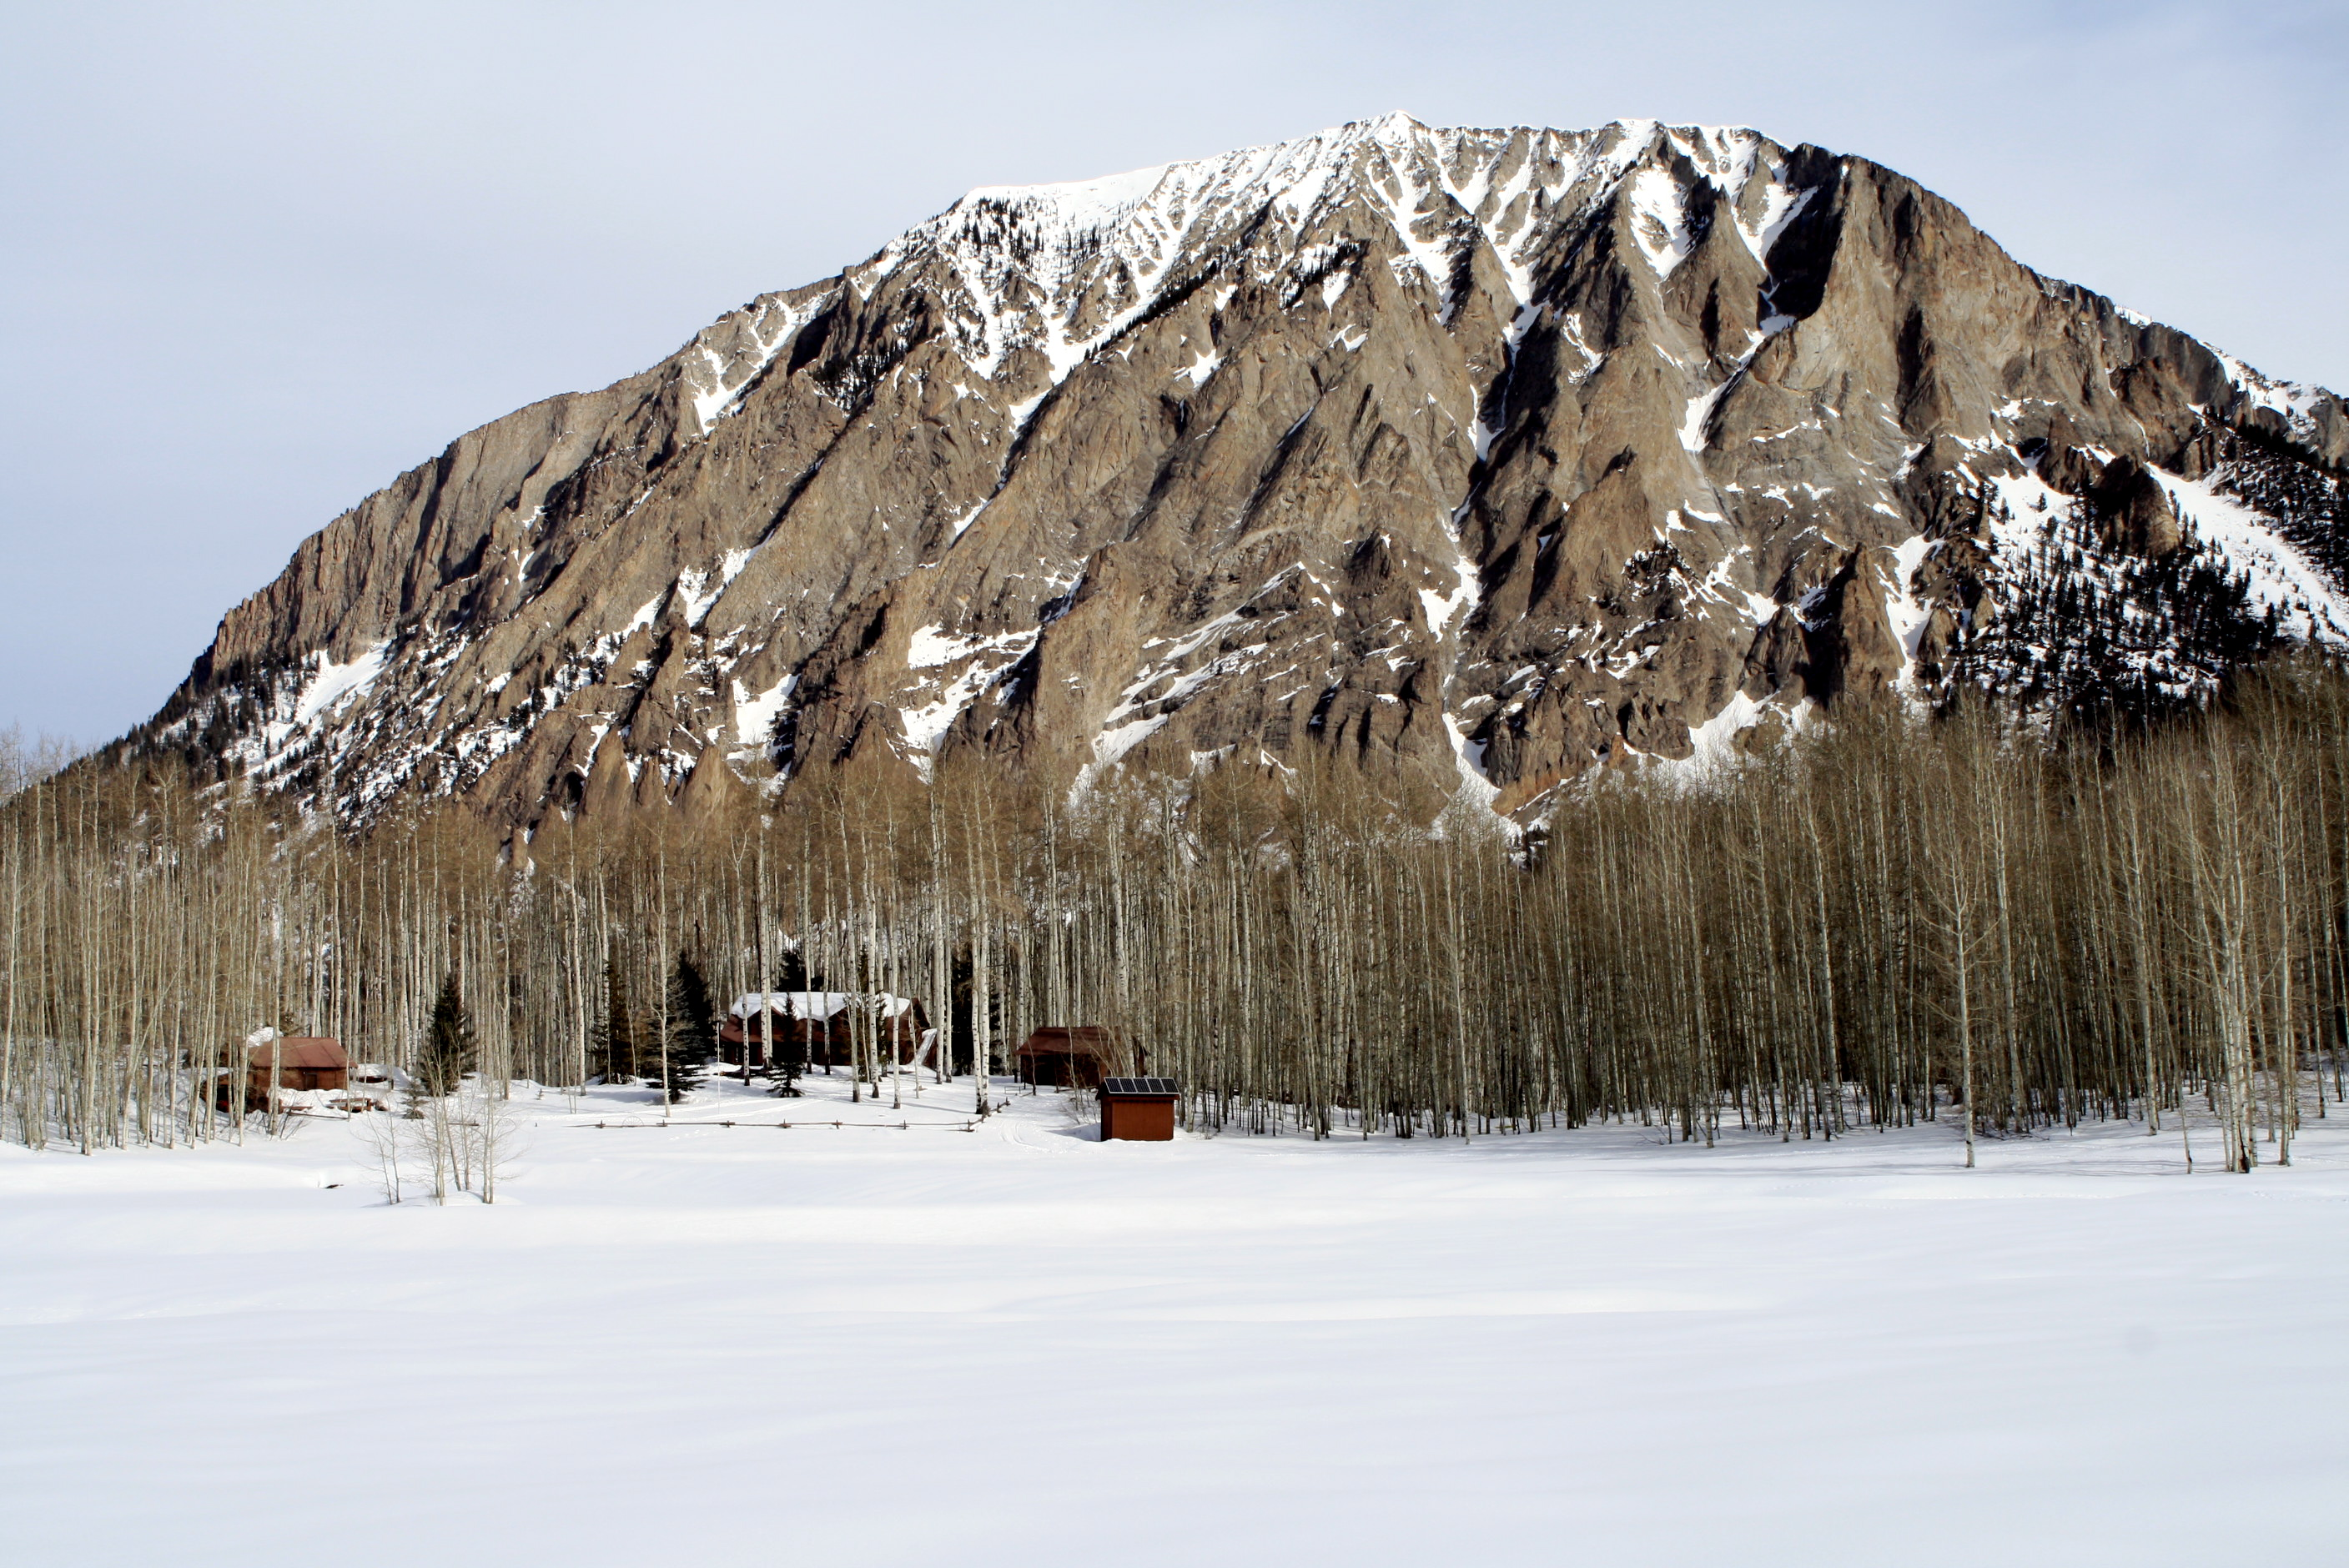 The Wells cabin in the shadow of Marcillena Mountain